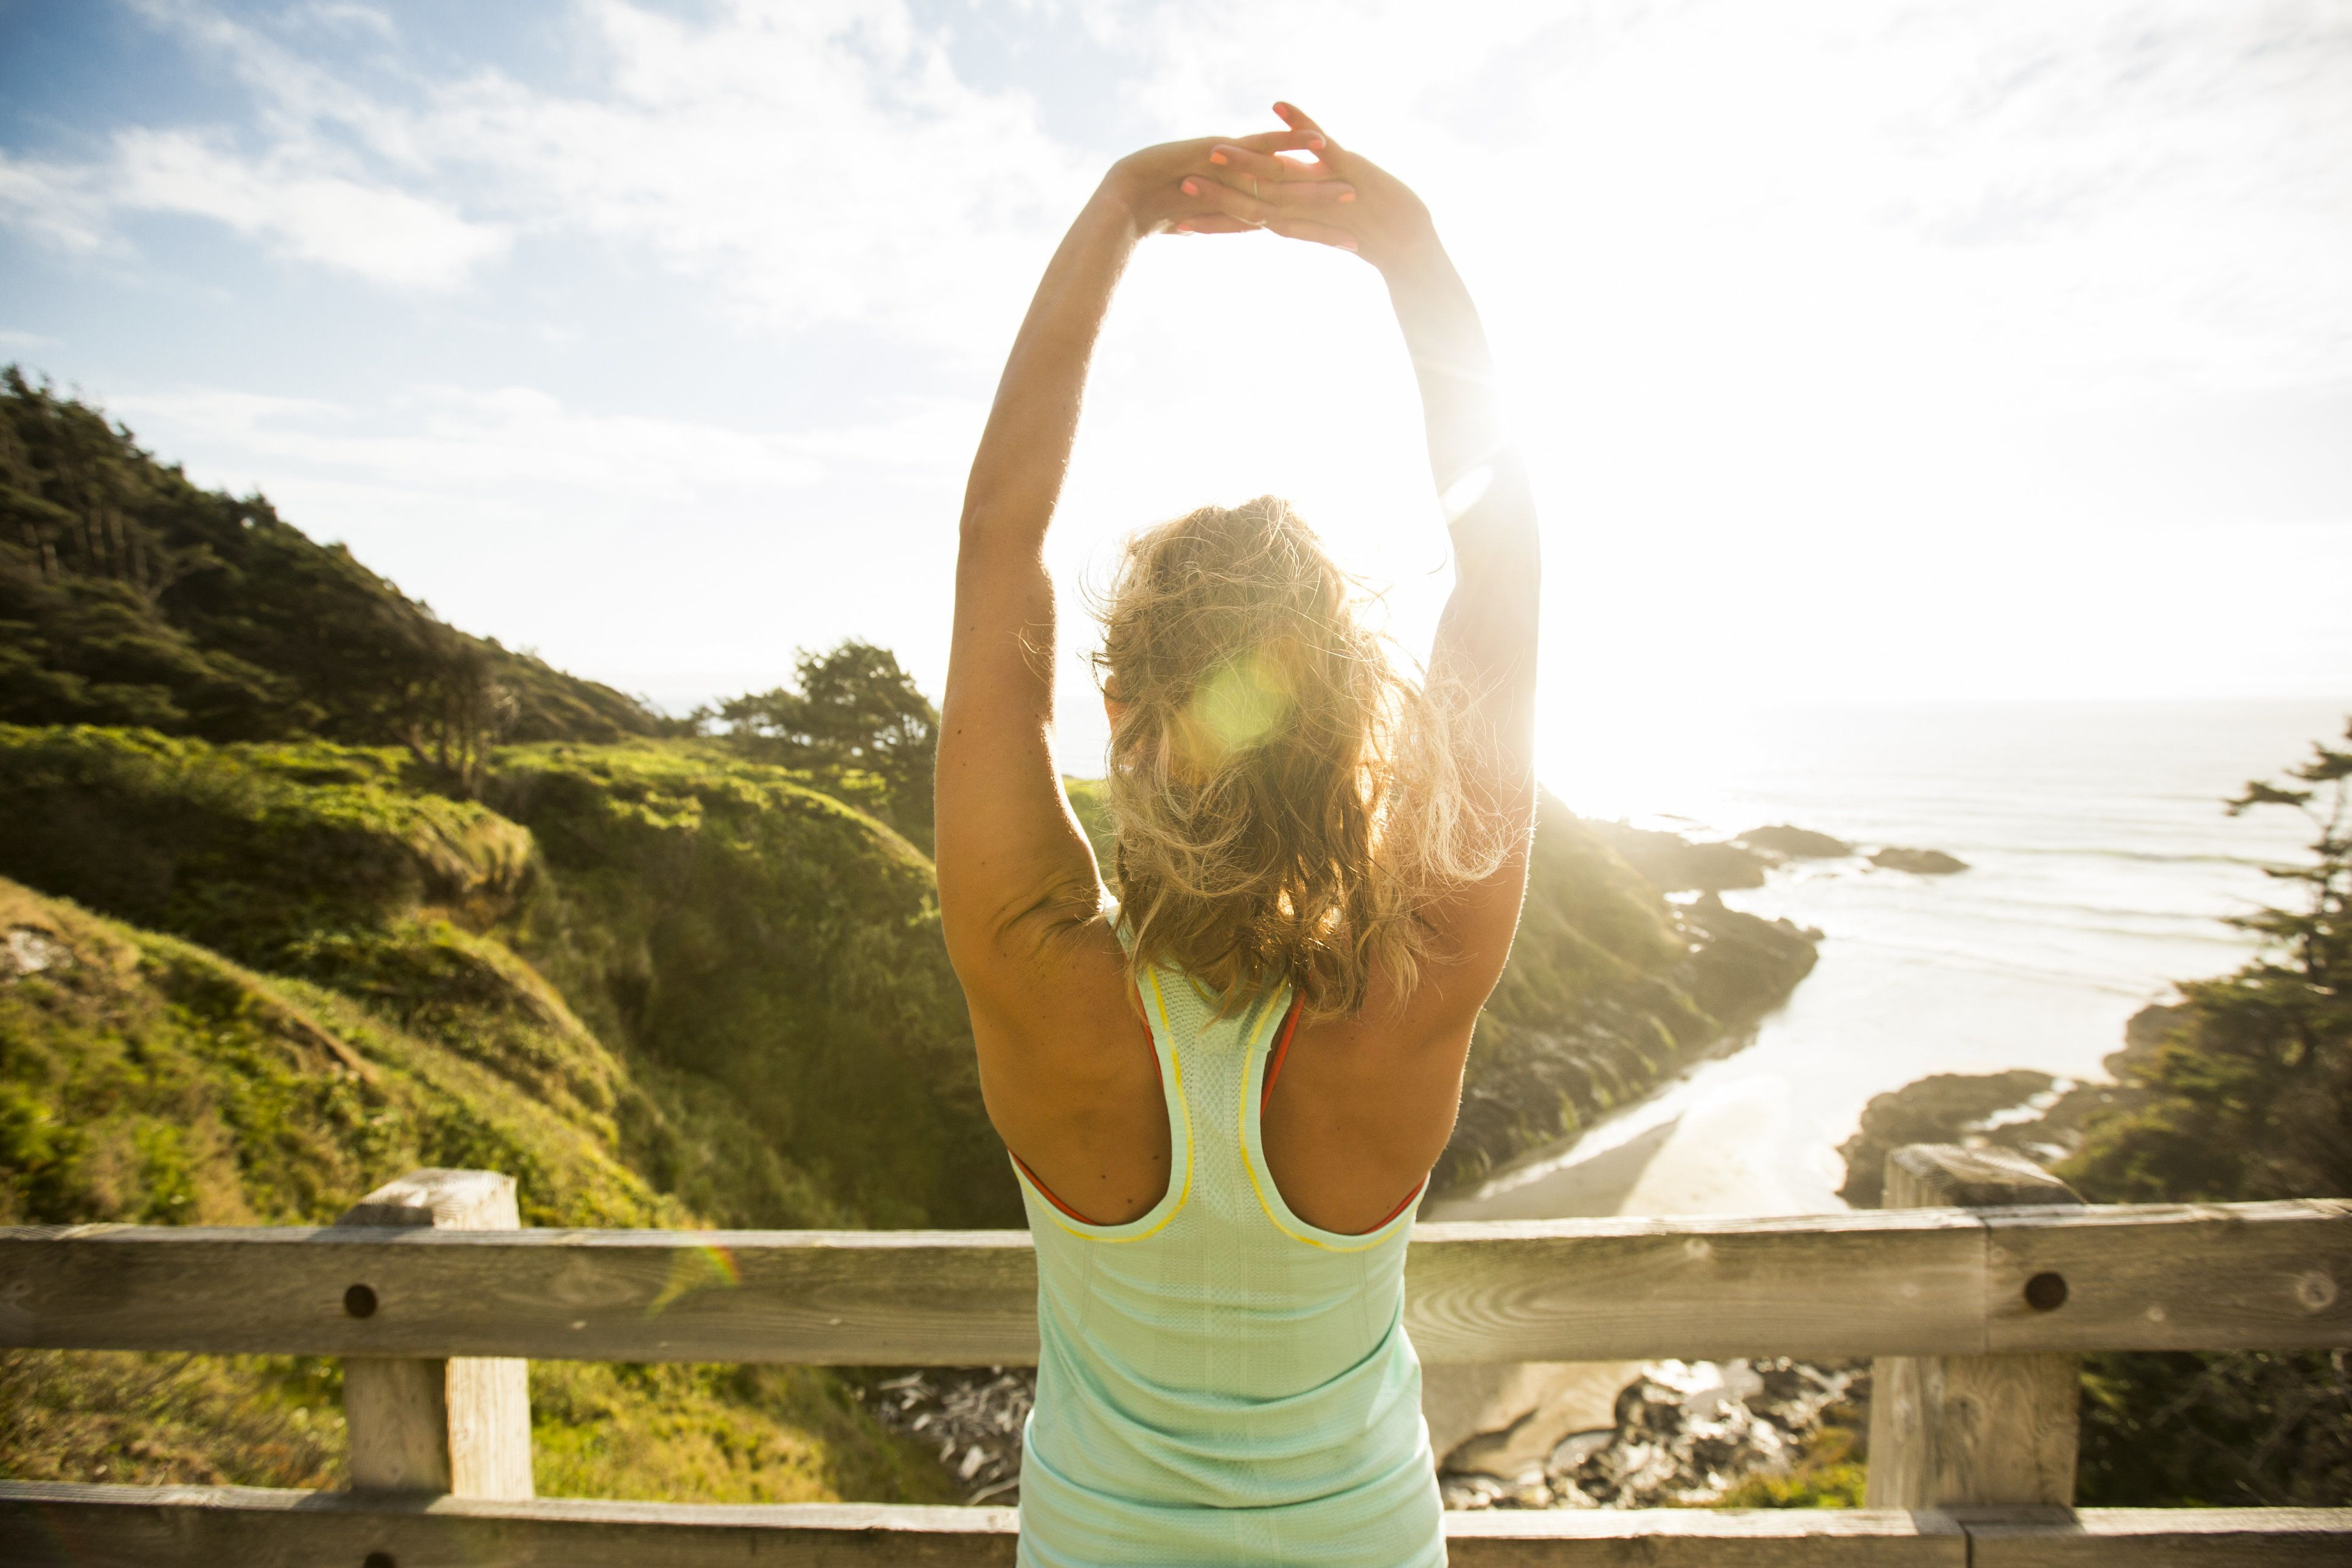 Isstarting a health or fitness routine overwhelming? Try out new healthy habits for five minutes at a time to see if th